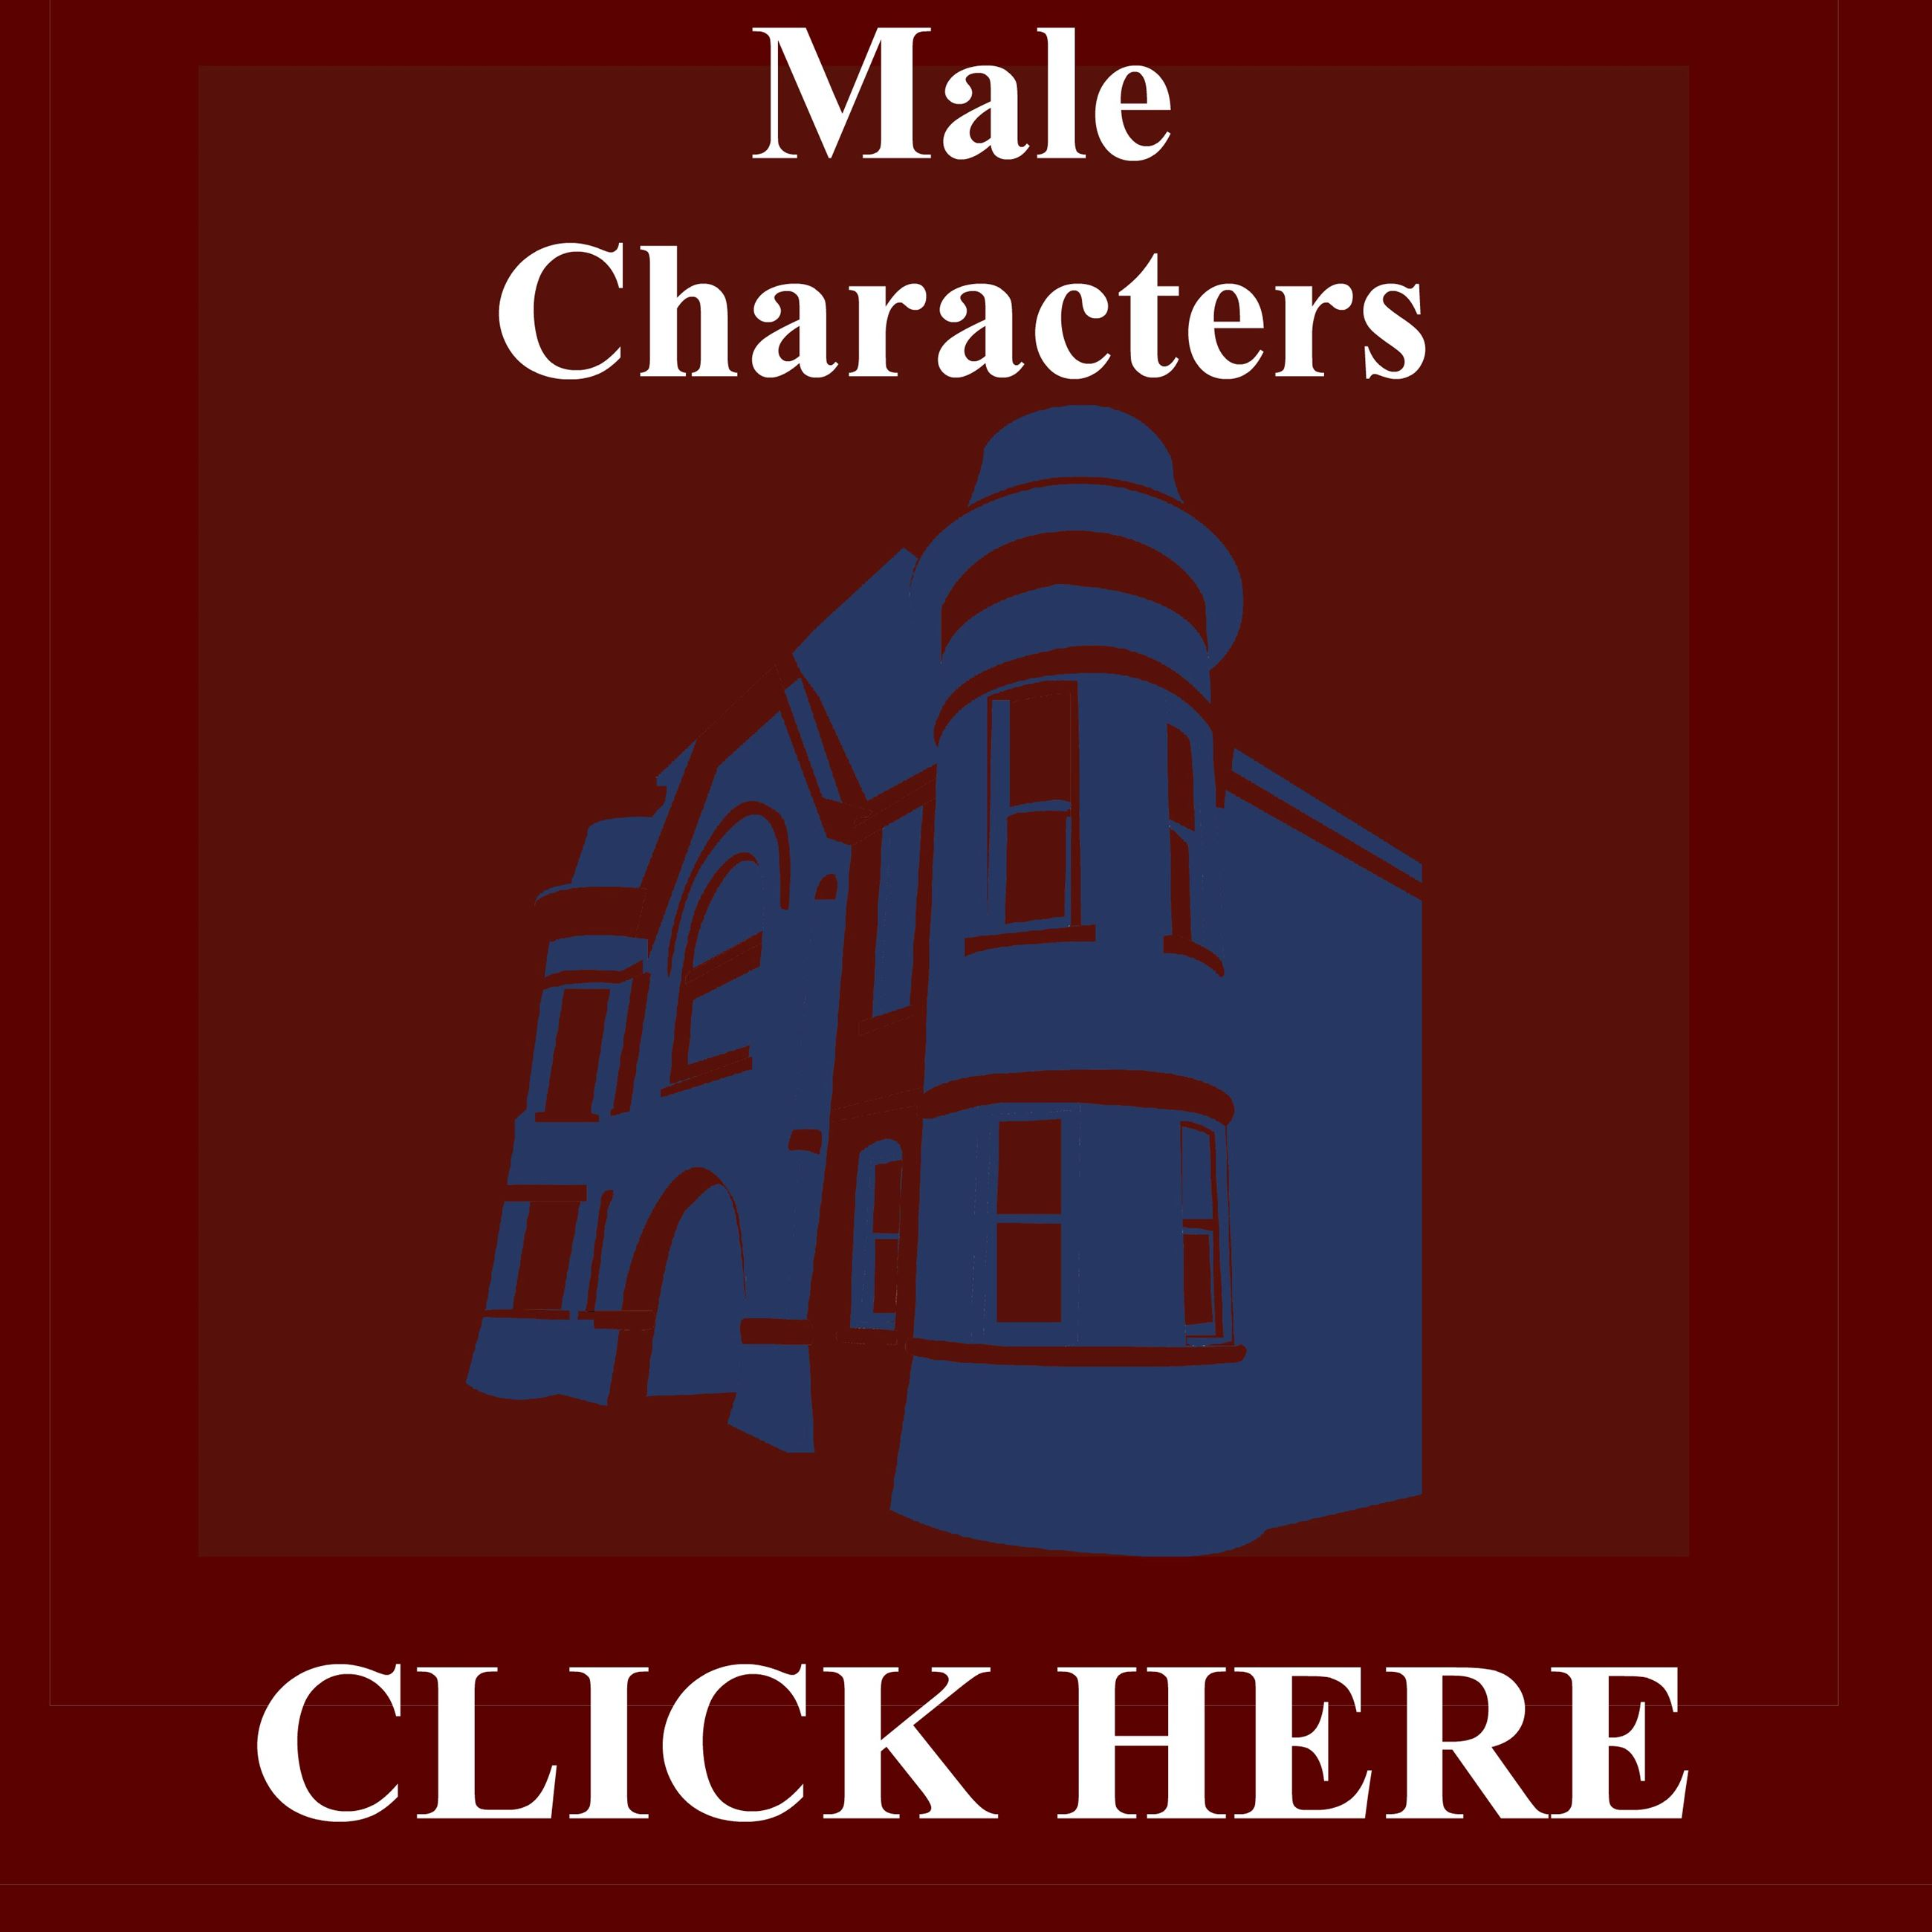 CLICK HERE for more information about MALE Characters